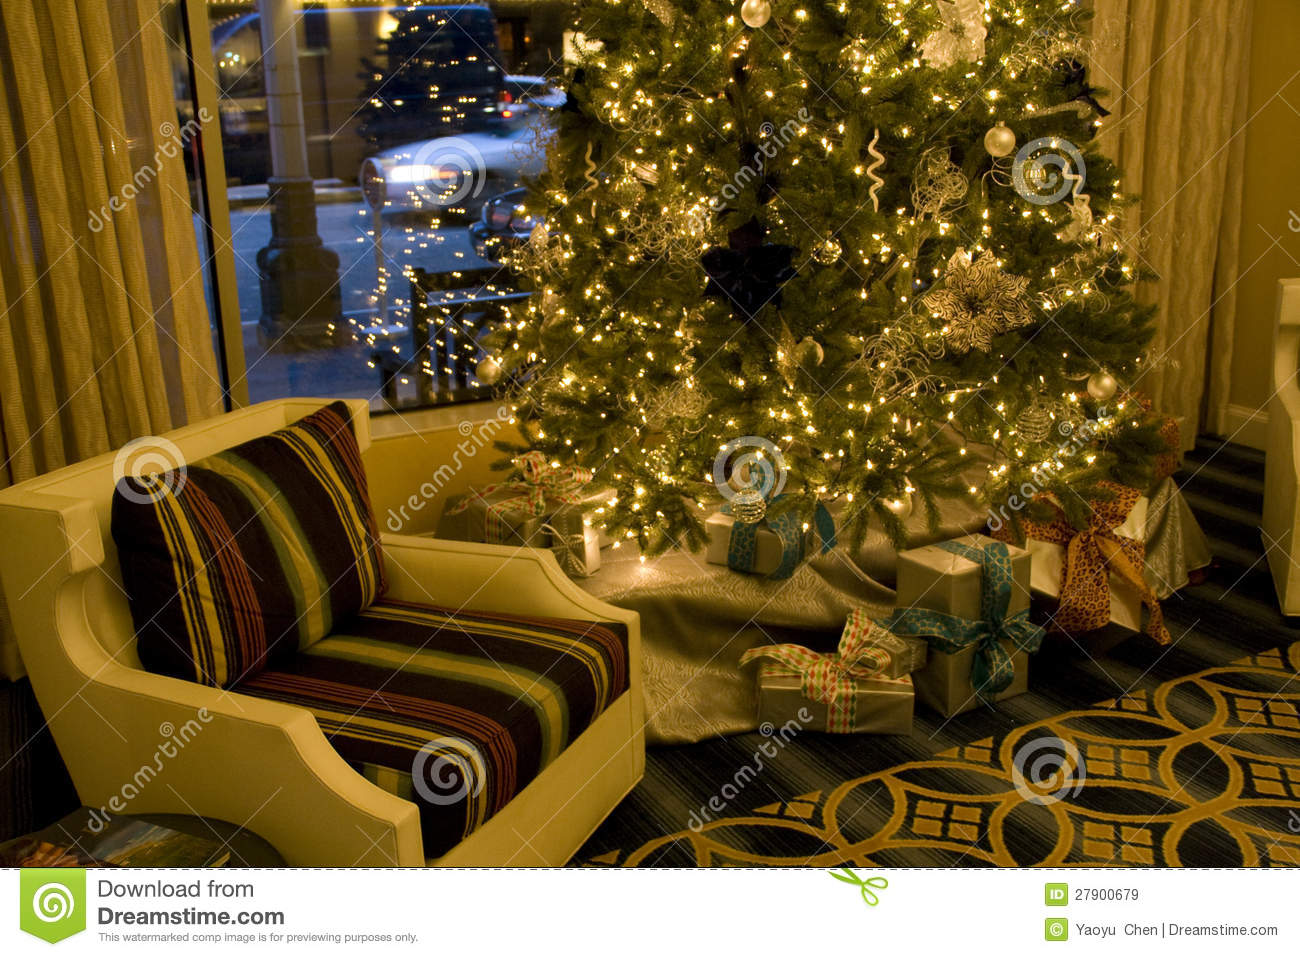 Cozy Holiday Room With Christmas Tree Stock Image